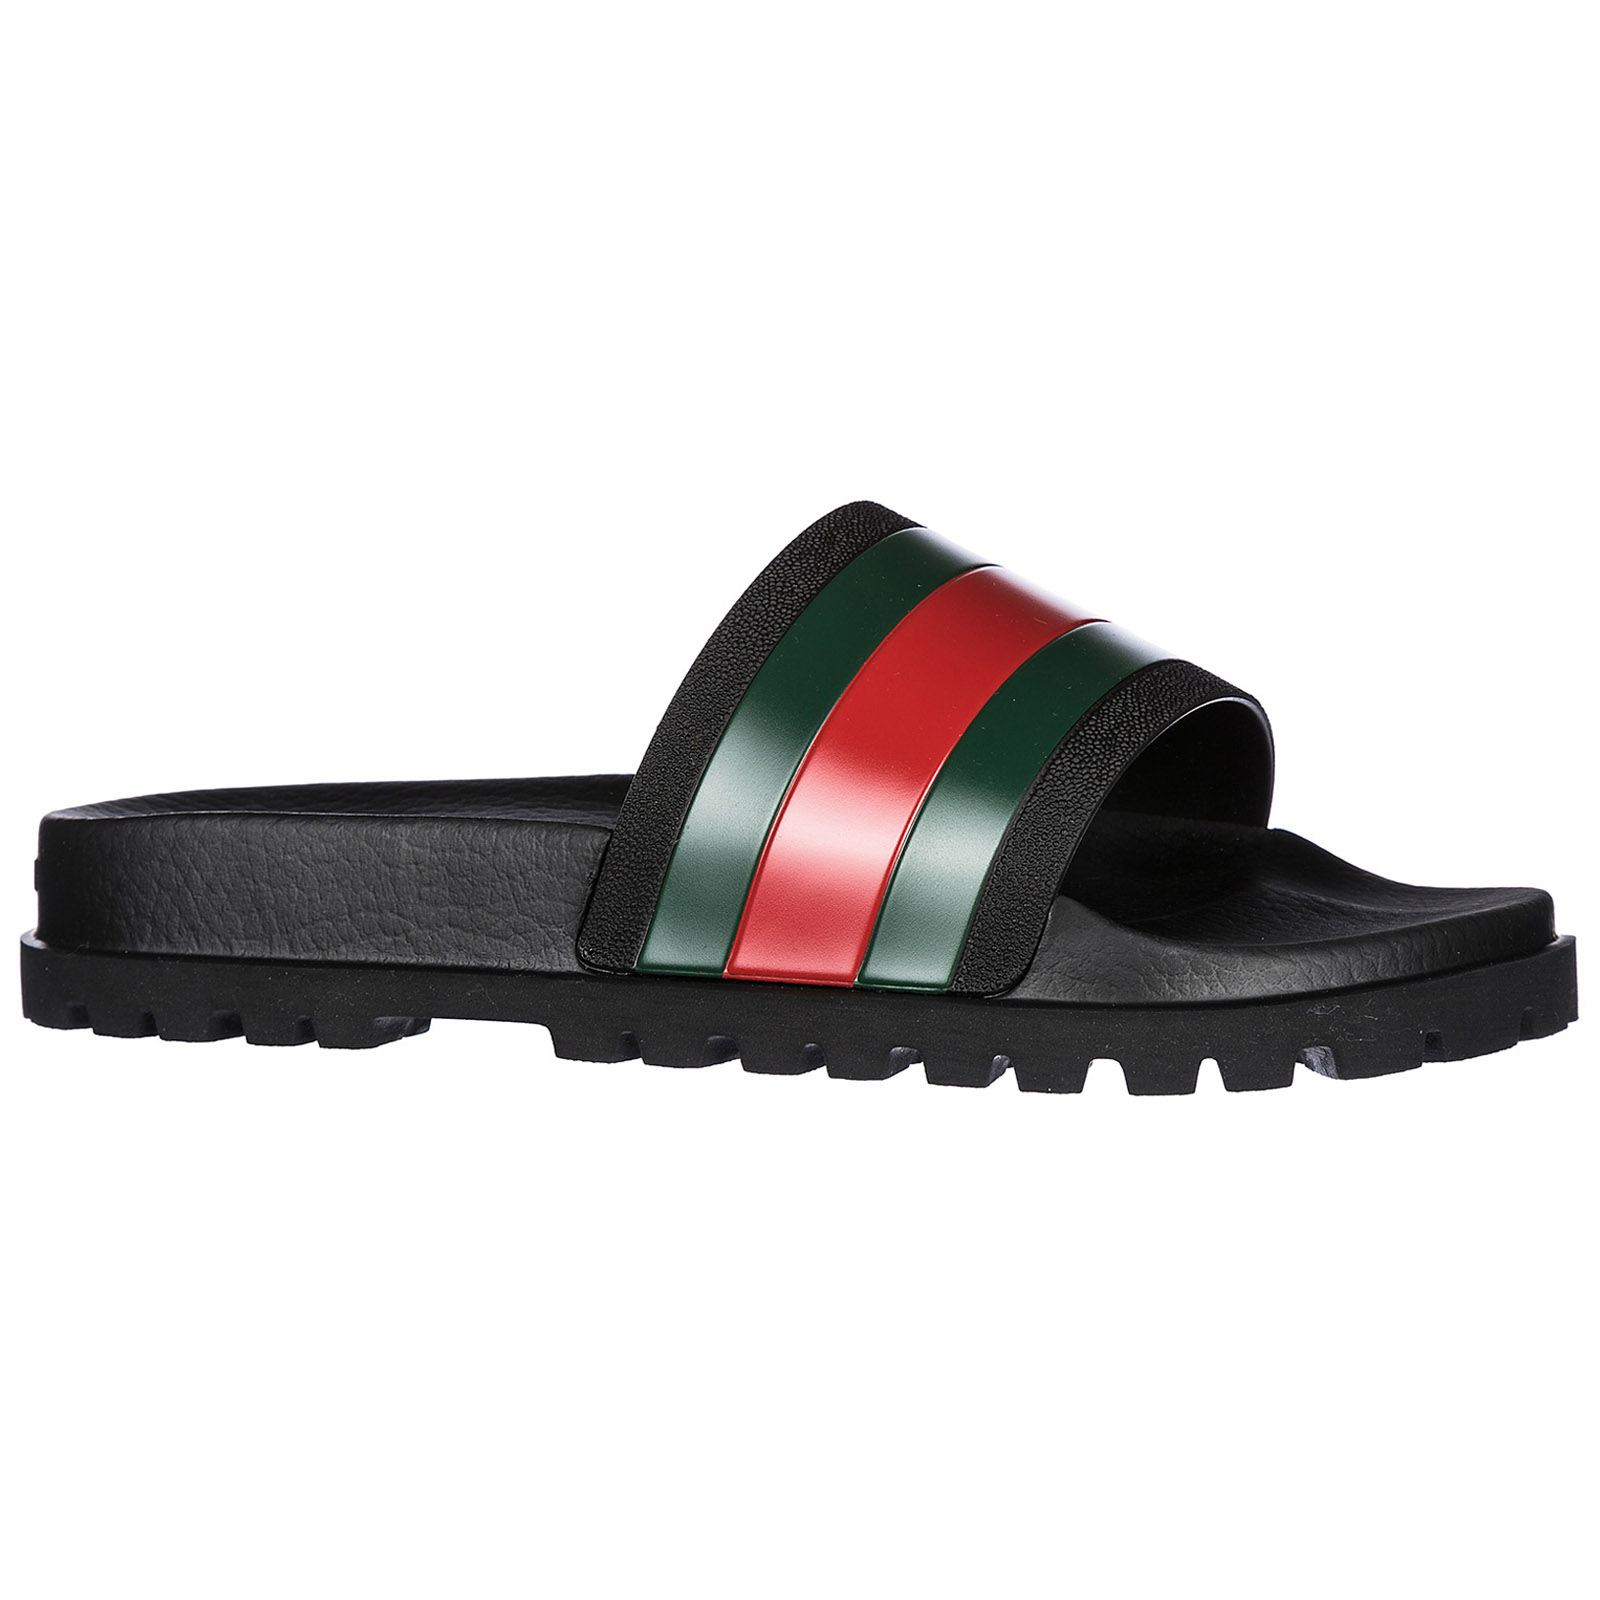 09c306afbaac Gucci Men s slippers sandals rubber